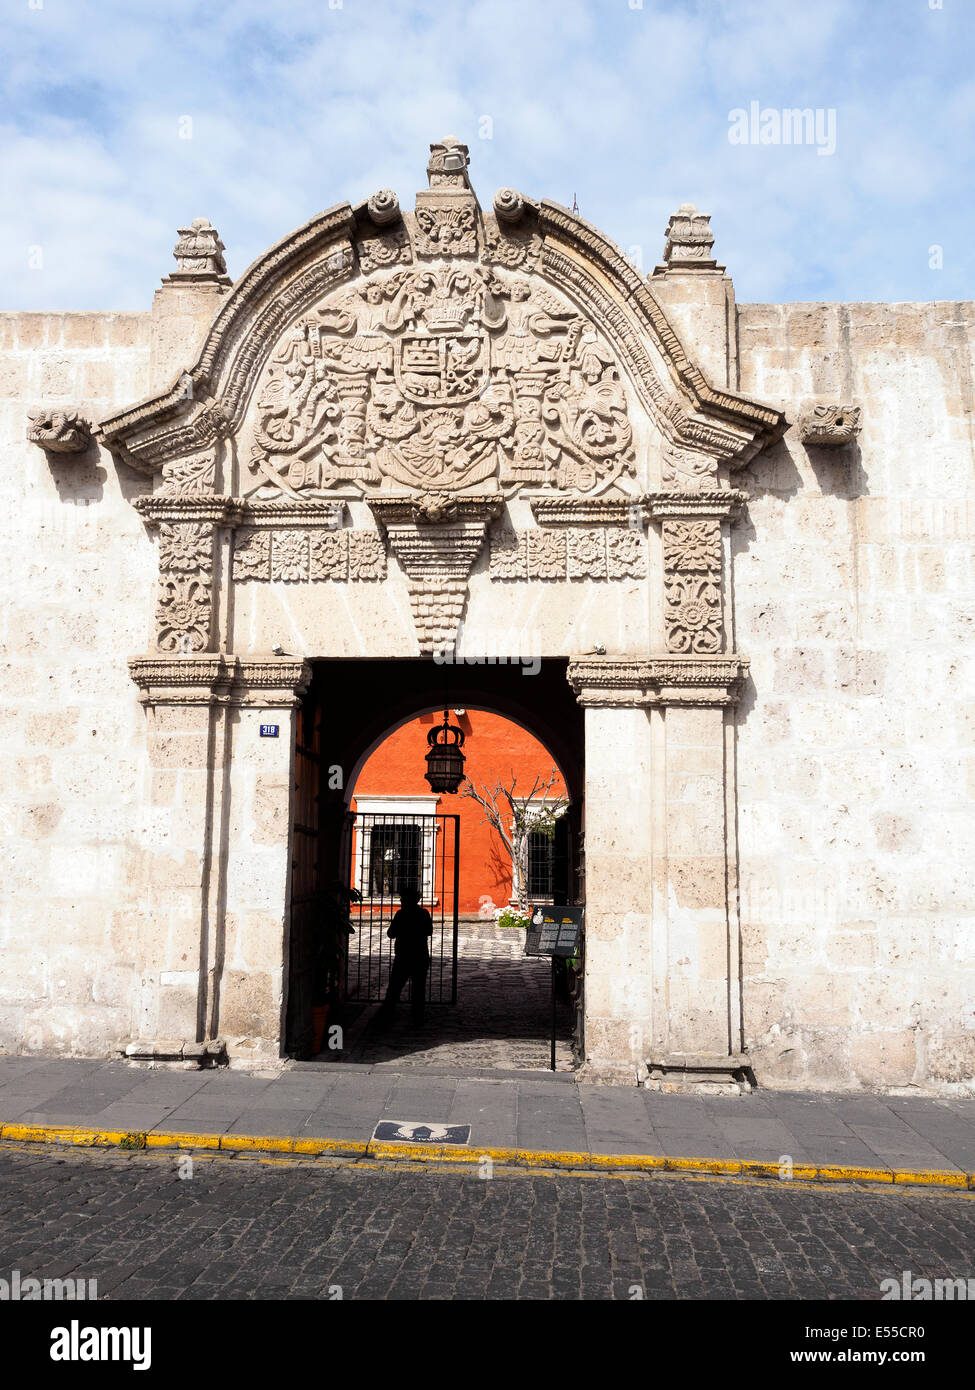 Casa del Moral (House of the Moral) entrance - Arequipa, Peru - Stock Image